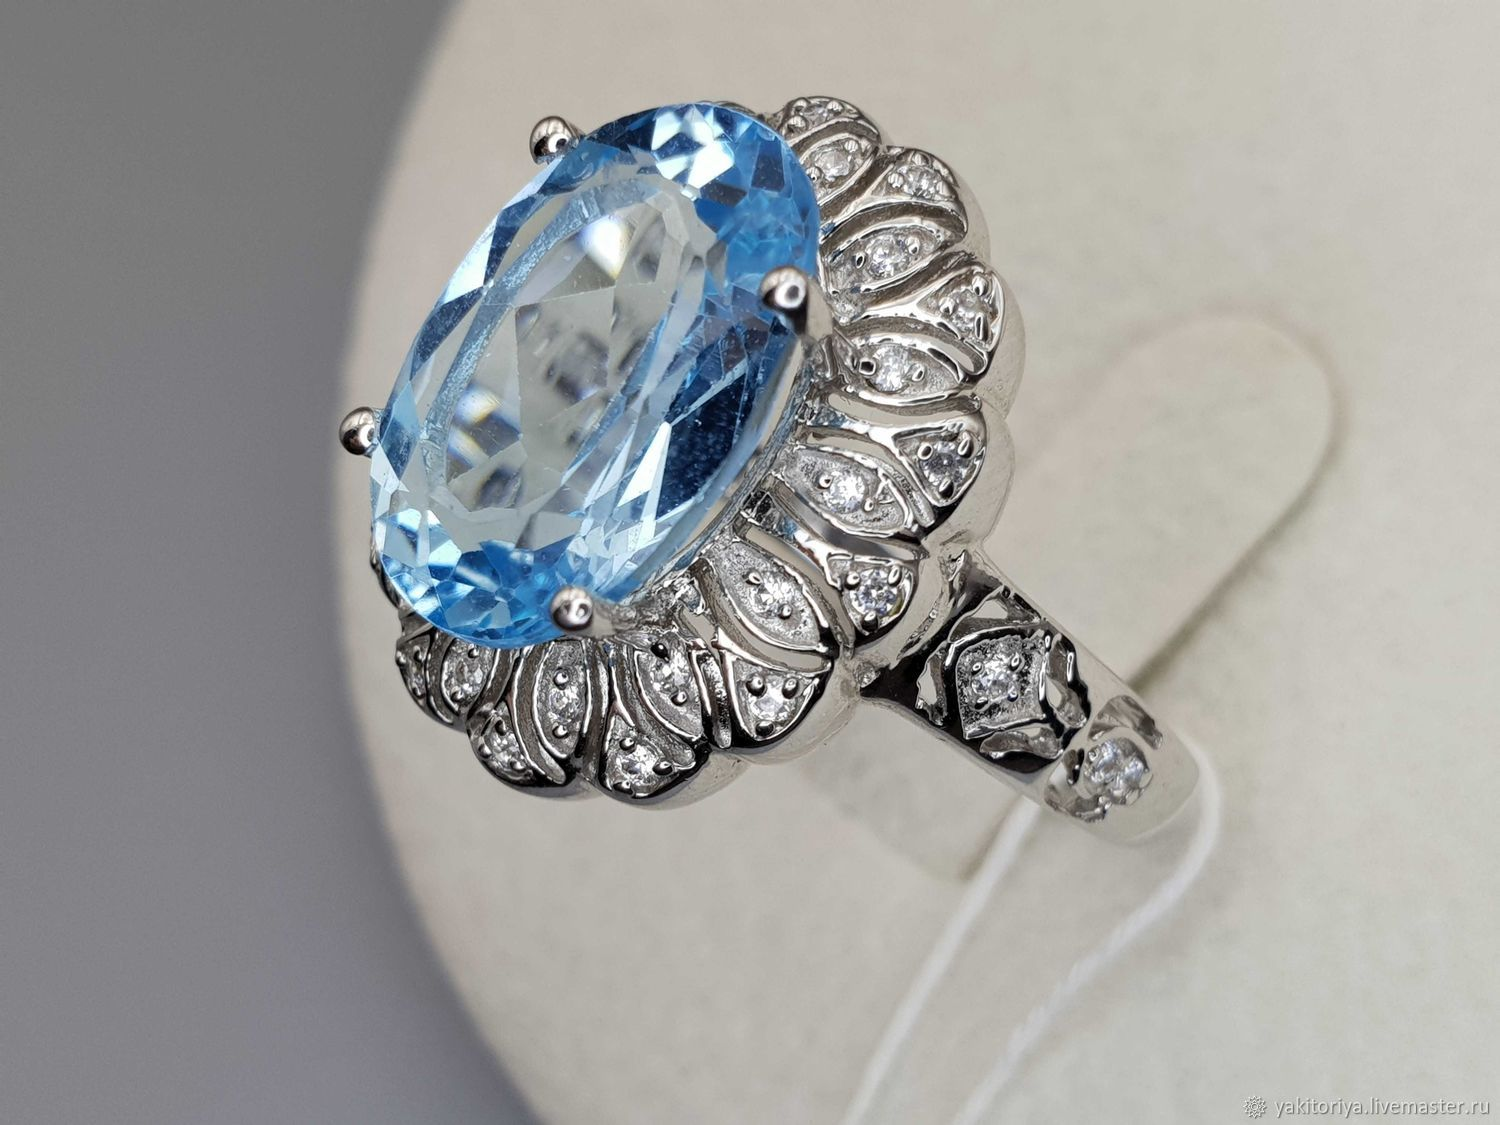 Silver ring with topaz 14h10 mm and cubic zirconia, Rings, Moscow,  Фото №1